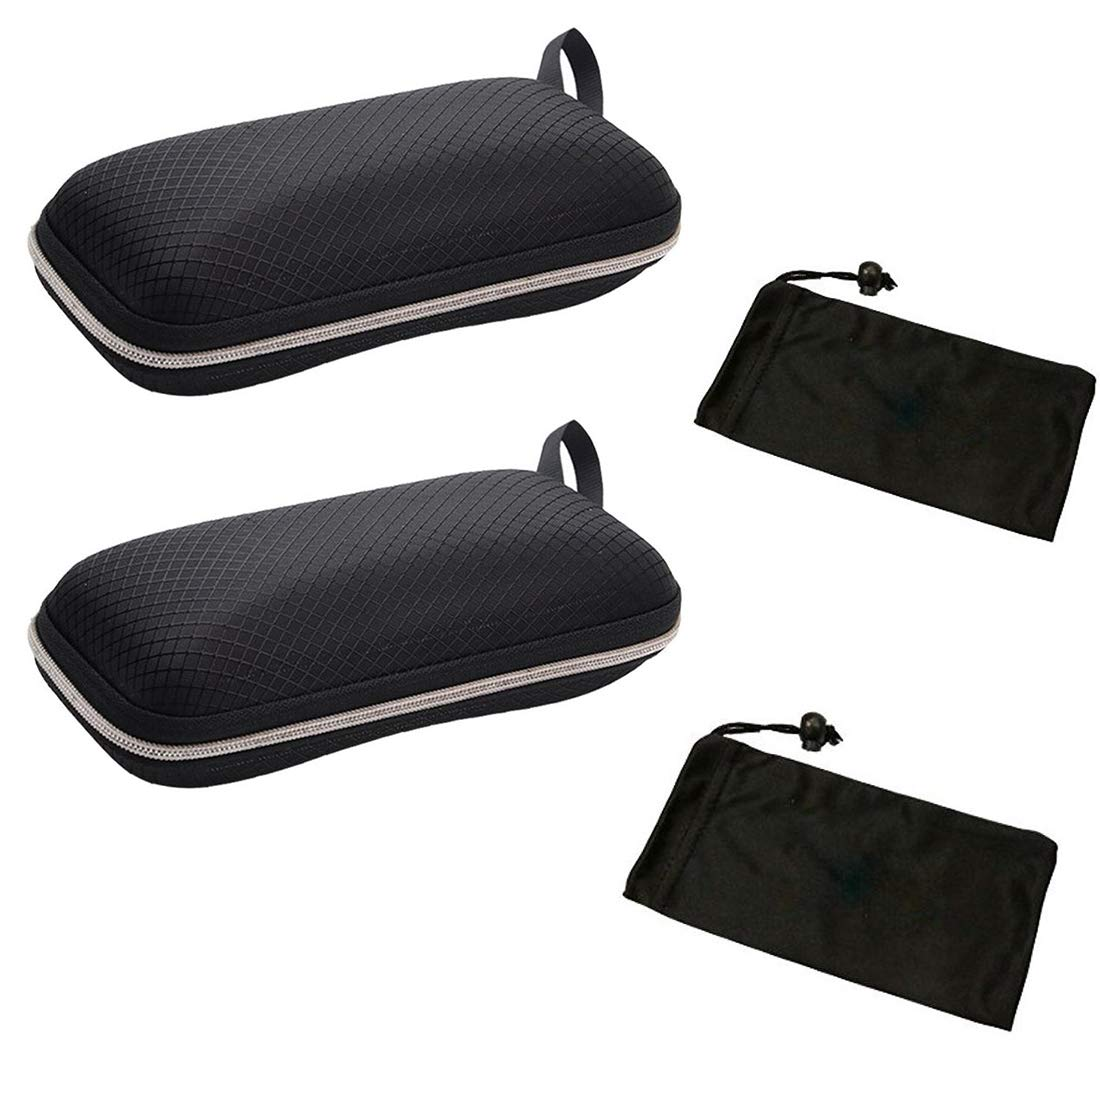 Brand New Black Zip Eye Glasses Nylon Eyewear Hard Case Eyeglasses Safety Bag Zippered Hard Sunglasses Case Holder Box Belt Holder Protector 2.5 High Eyeglasses Pouch